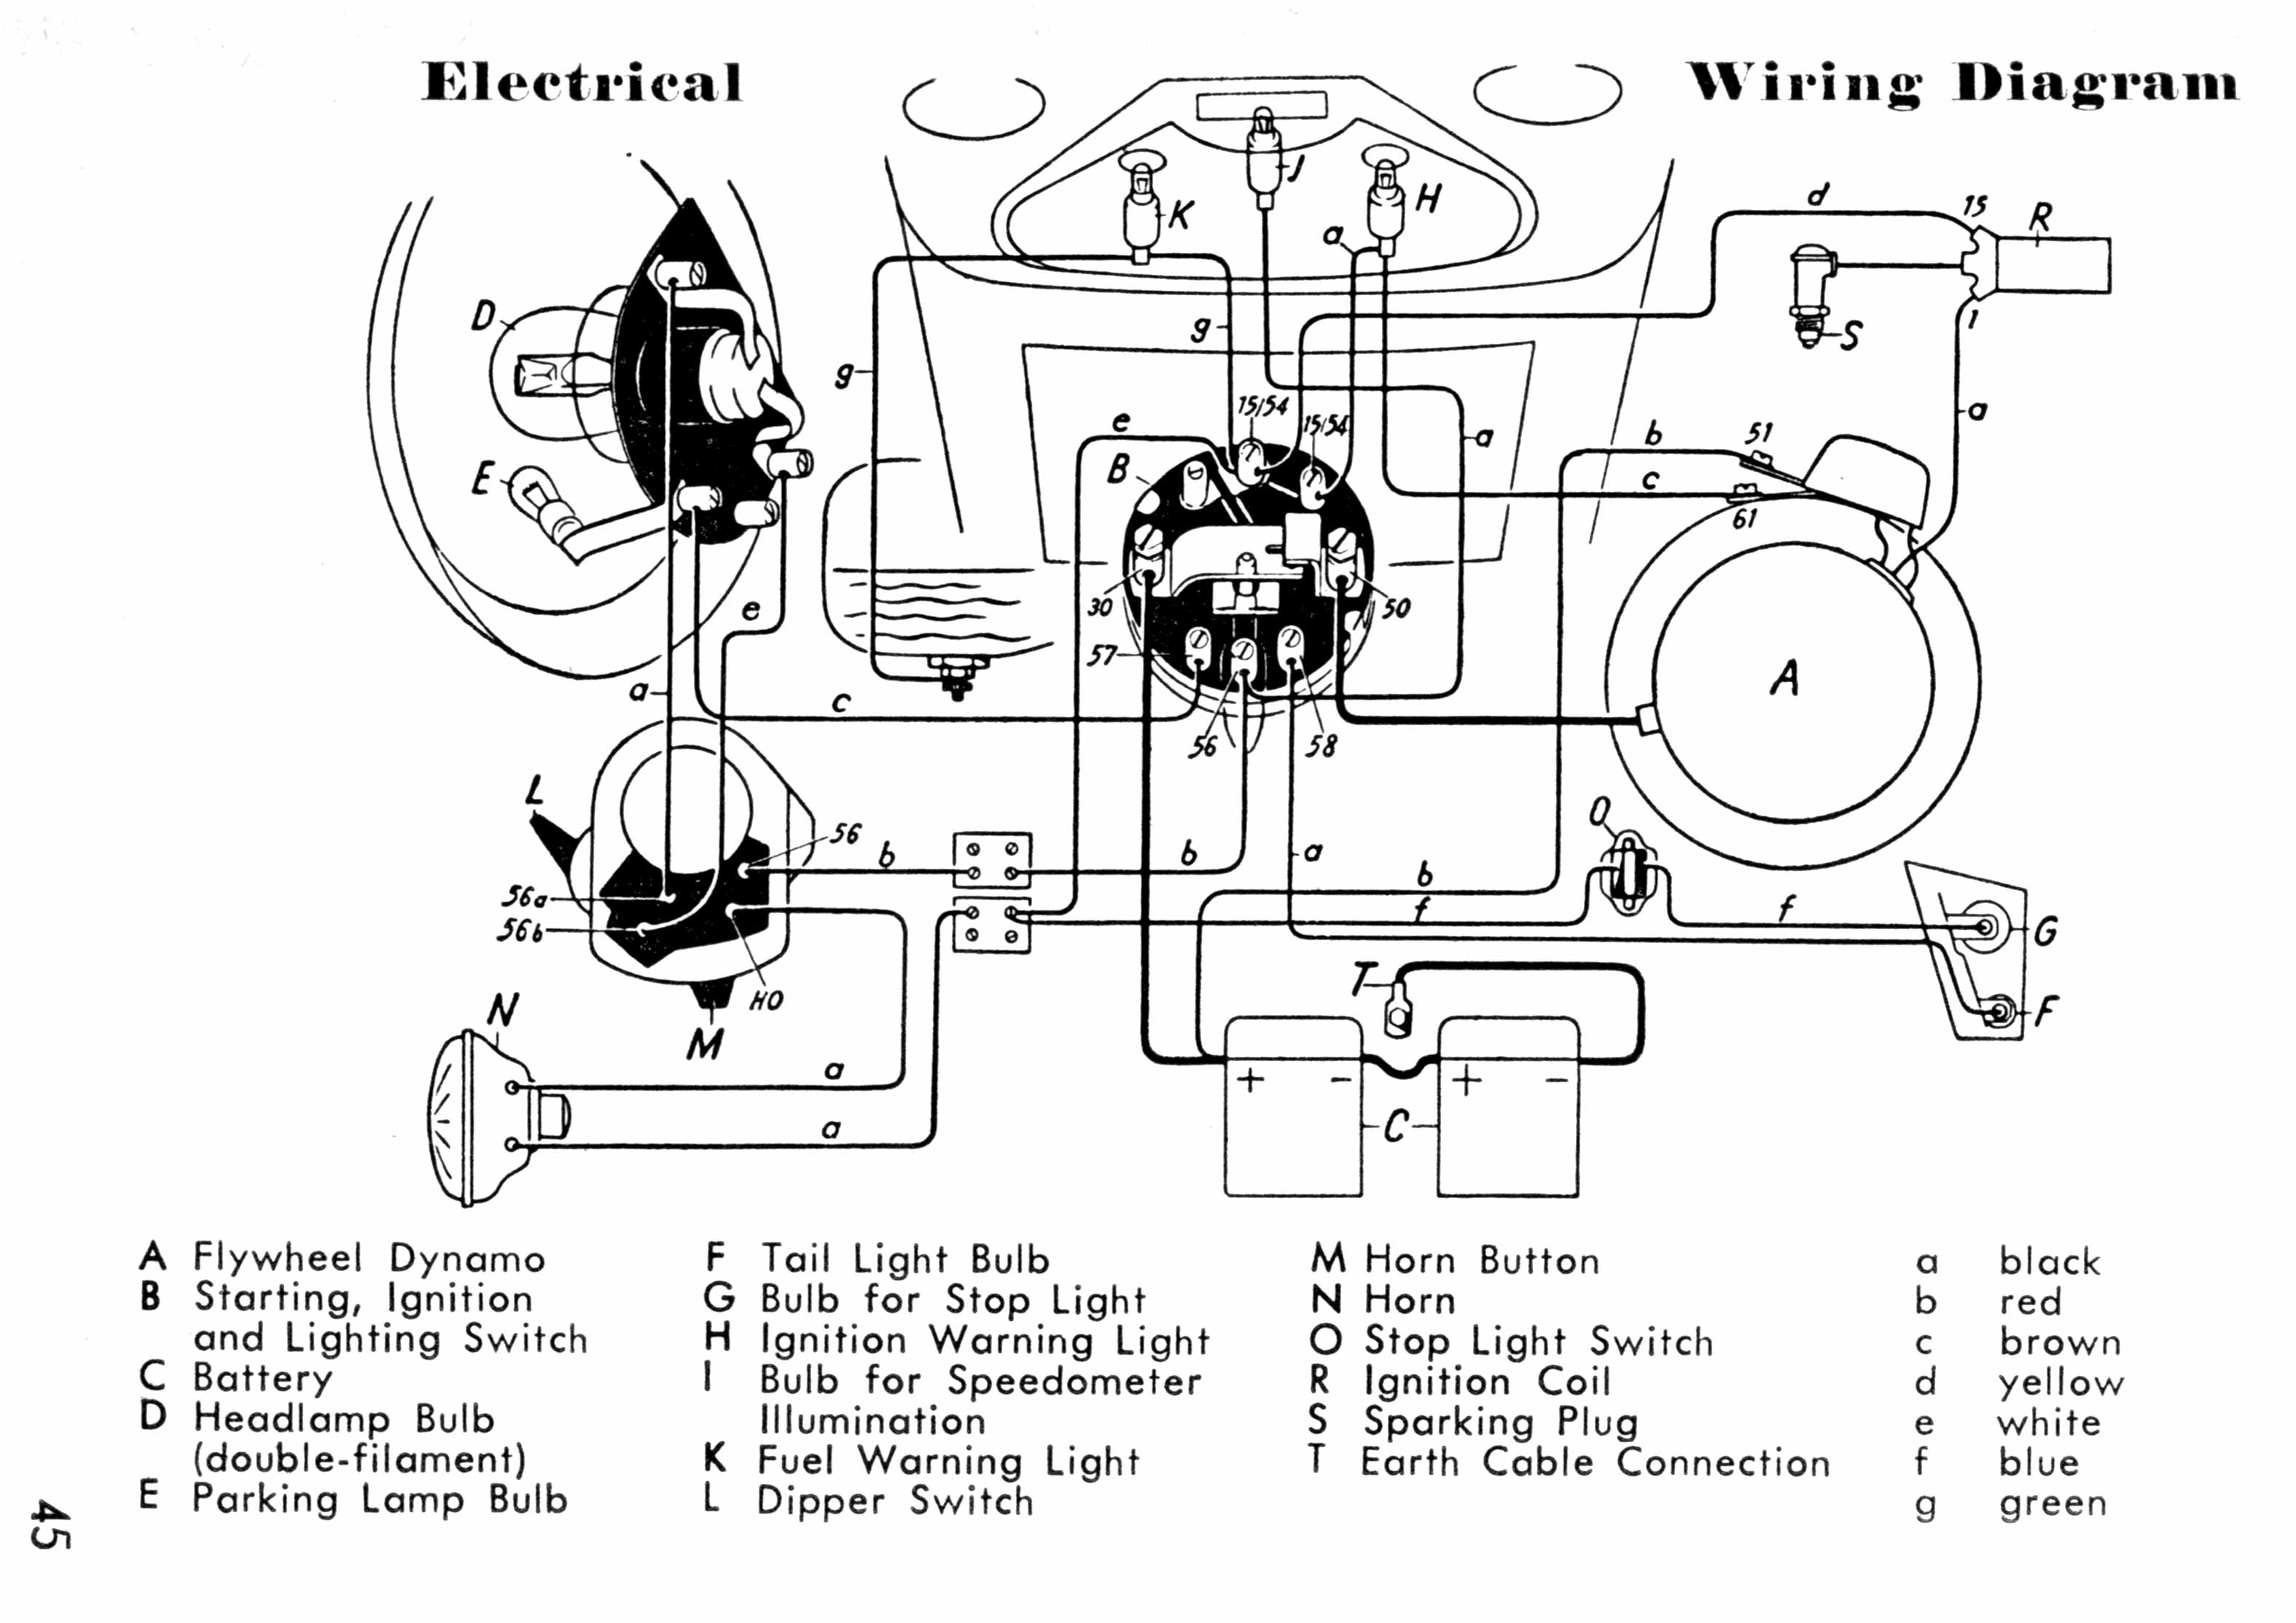 wiring diagram for 49cc 4 stroke scooter